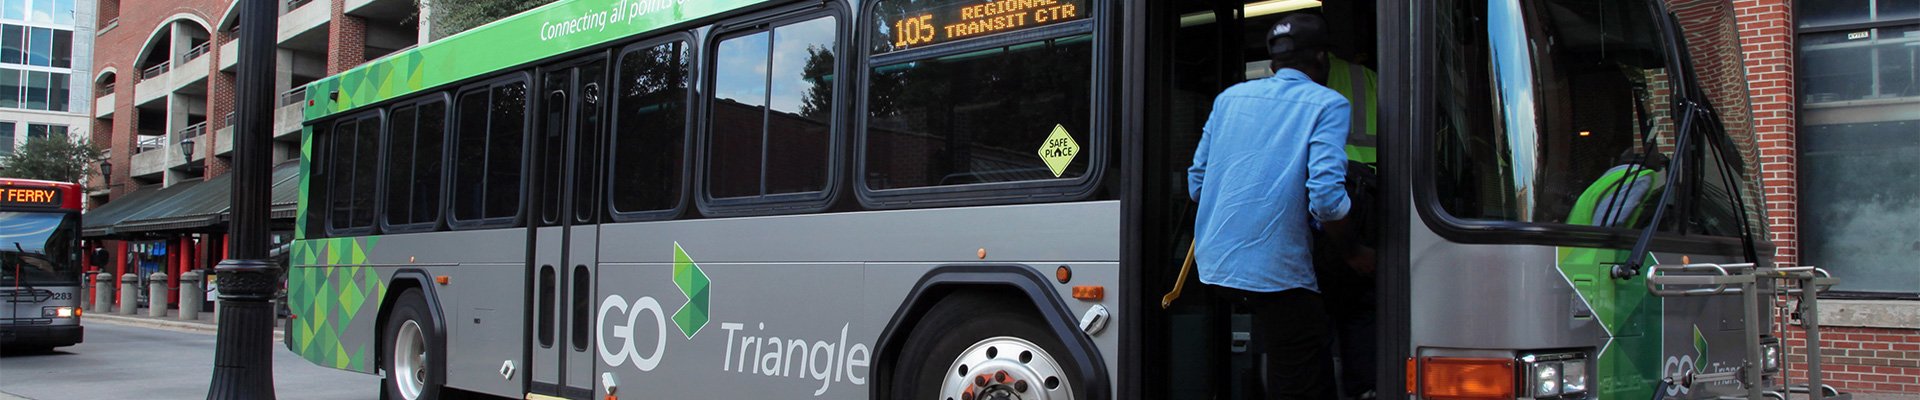 Man boards GoTriangle bus parked in Moore Square